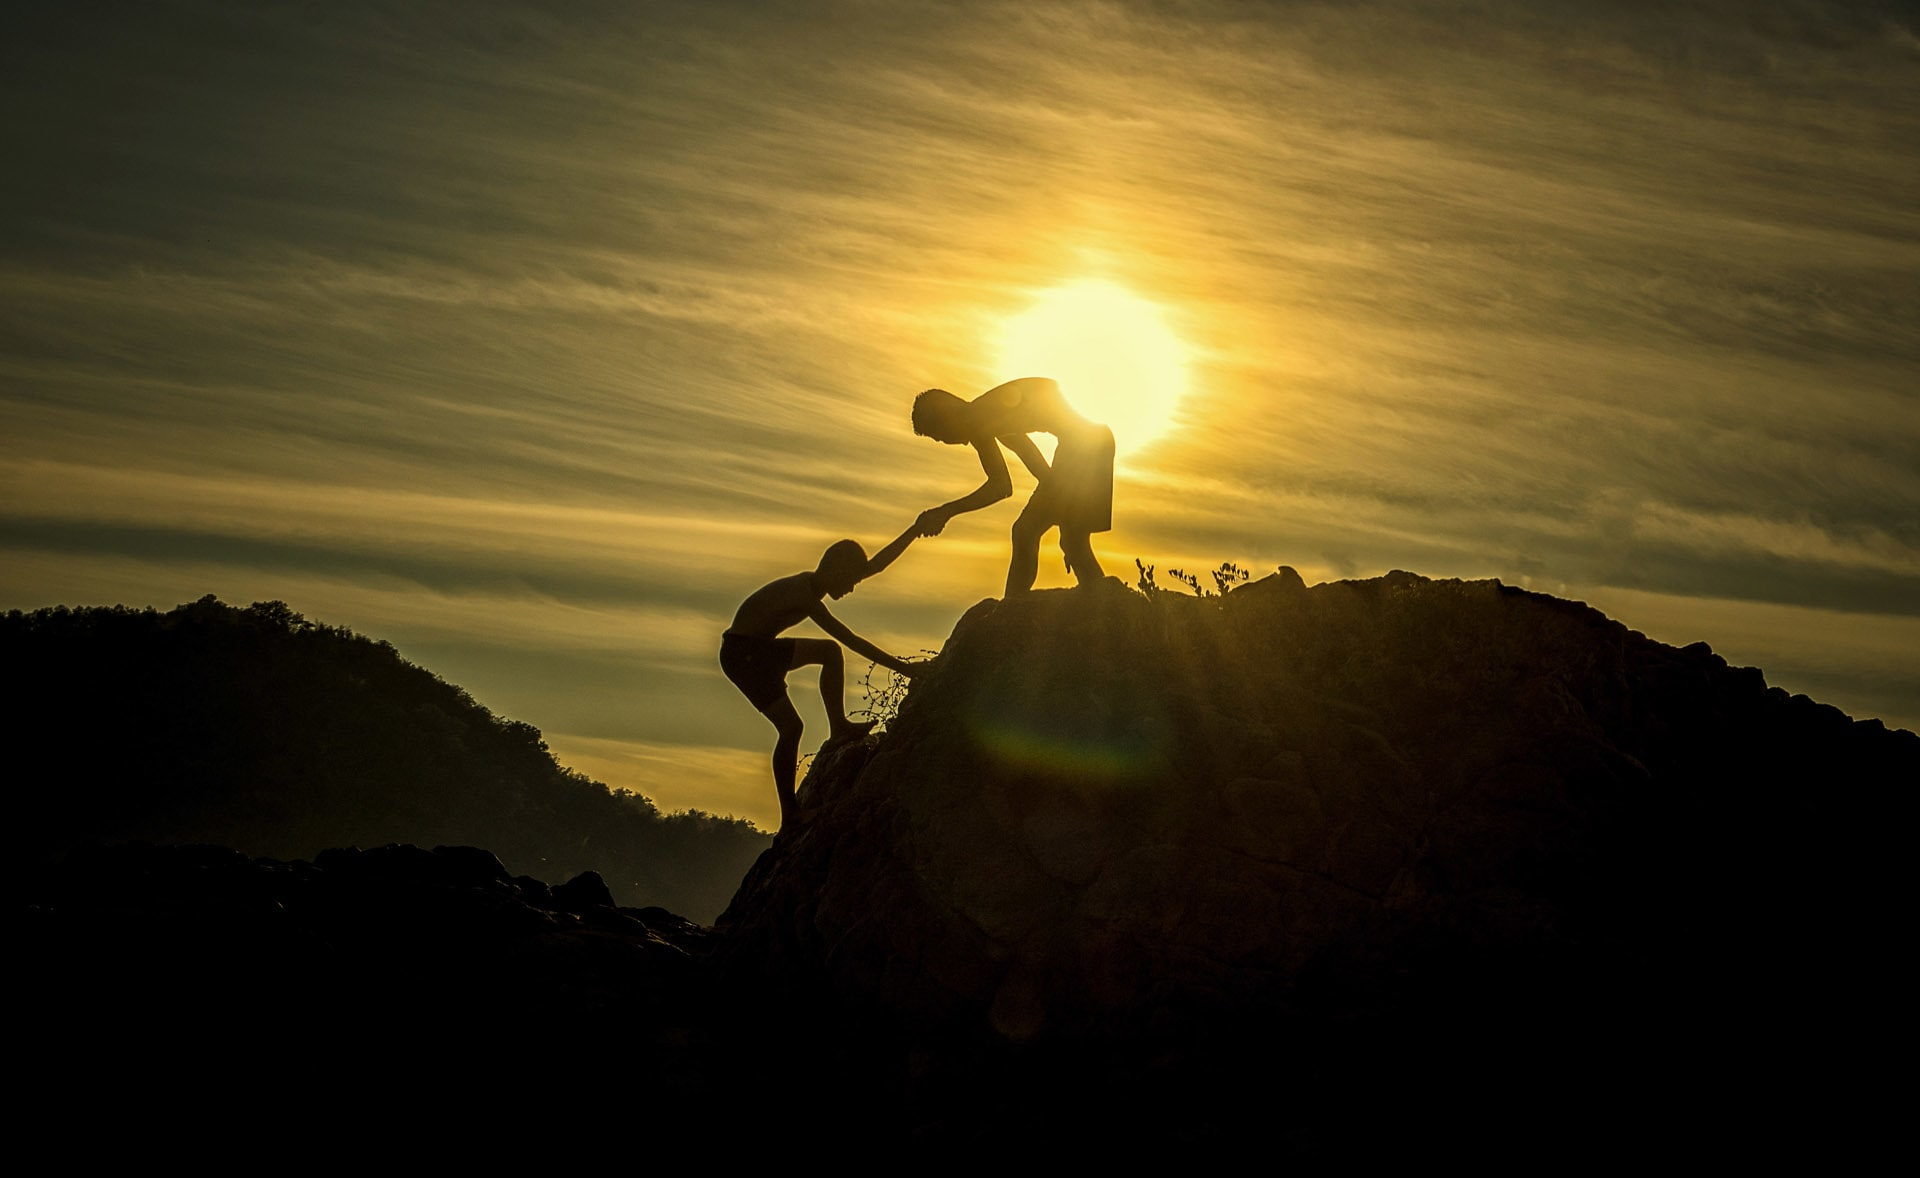 Person helping someone up a mountain